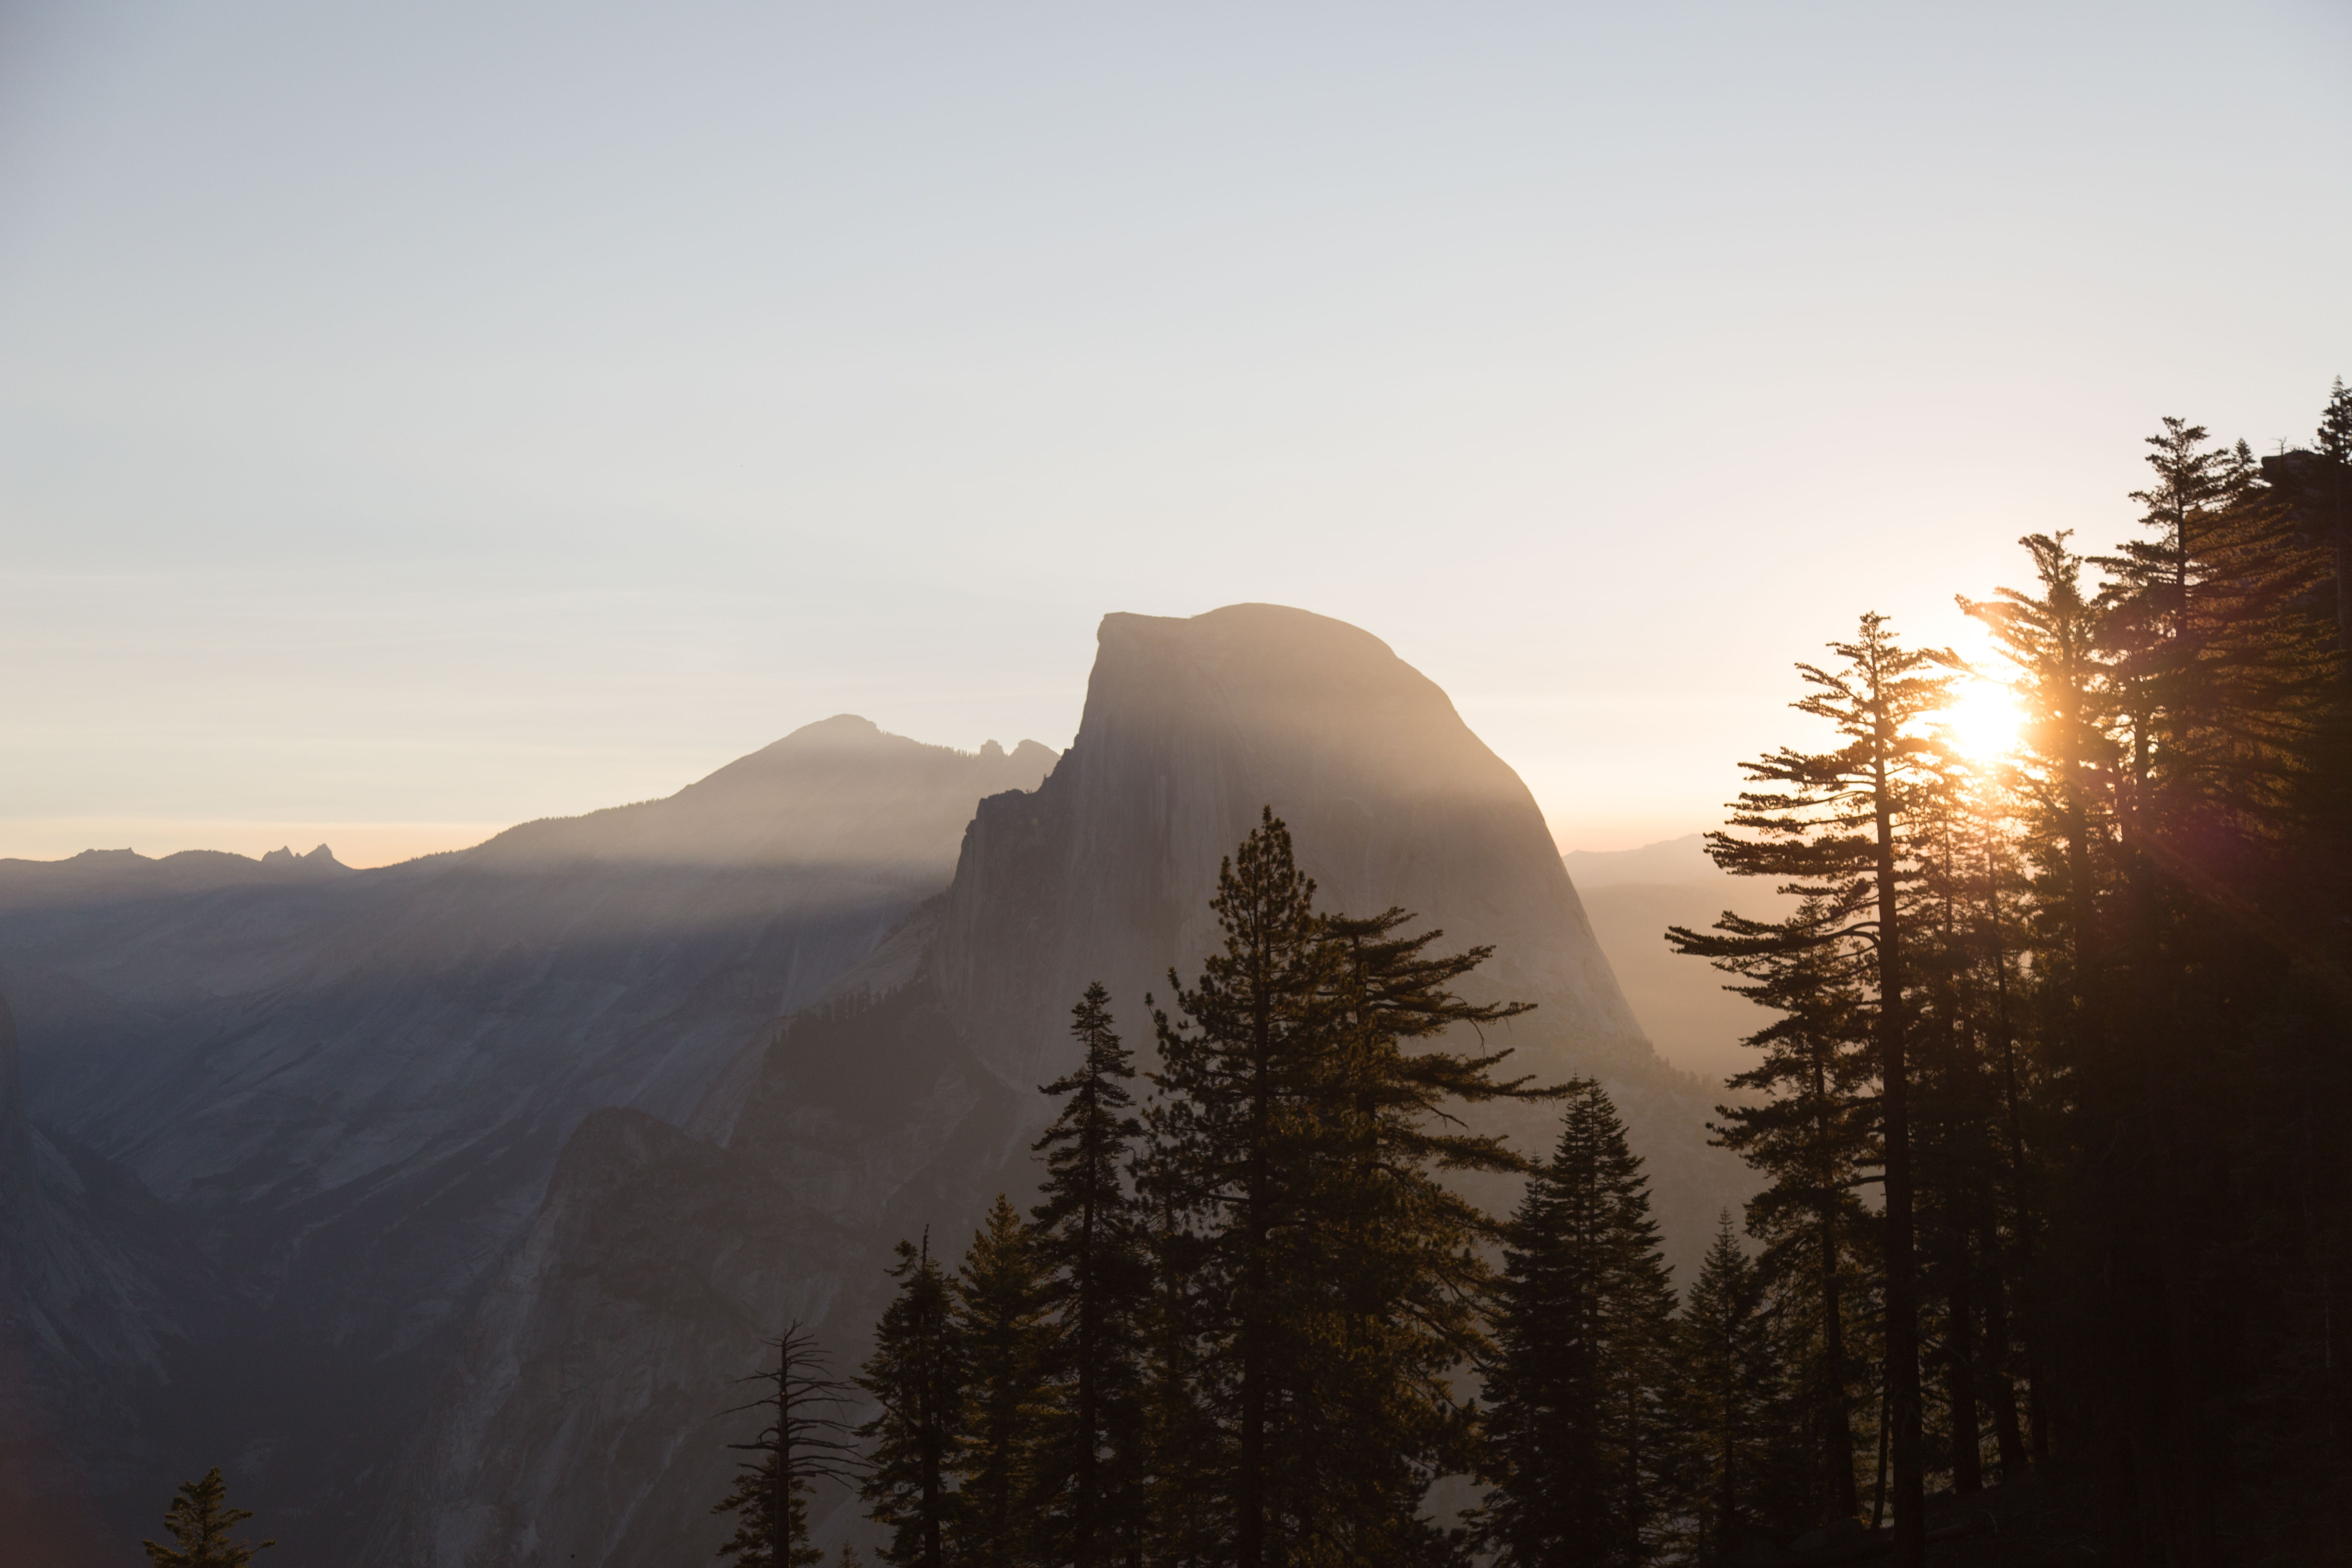 landscape photography of trees and mountain